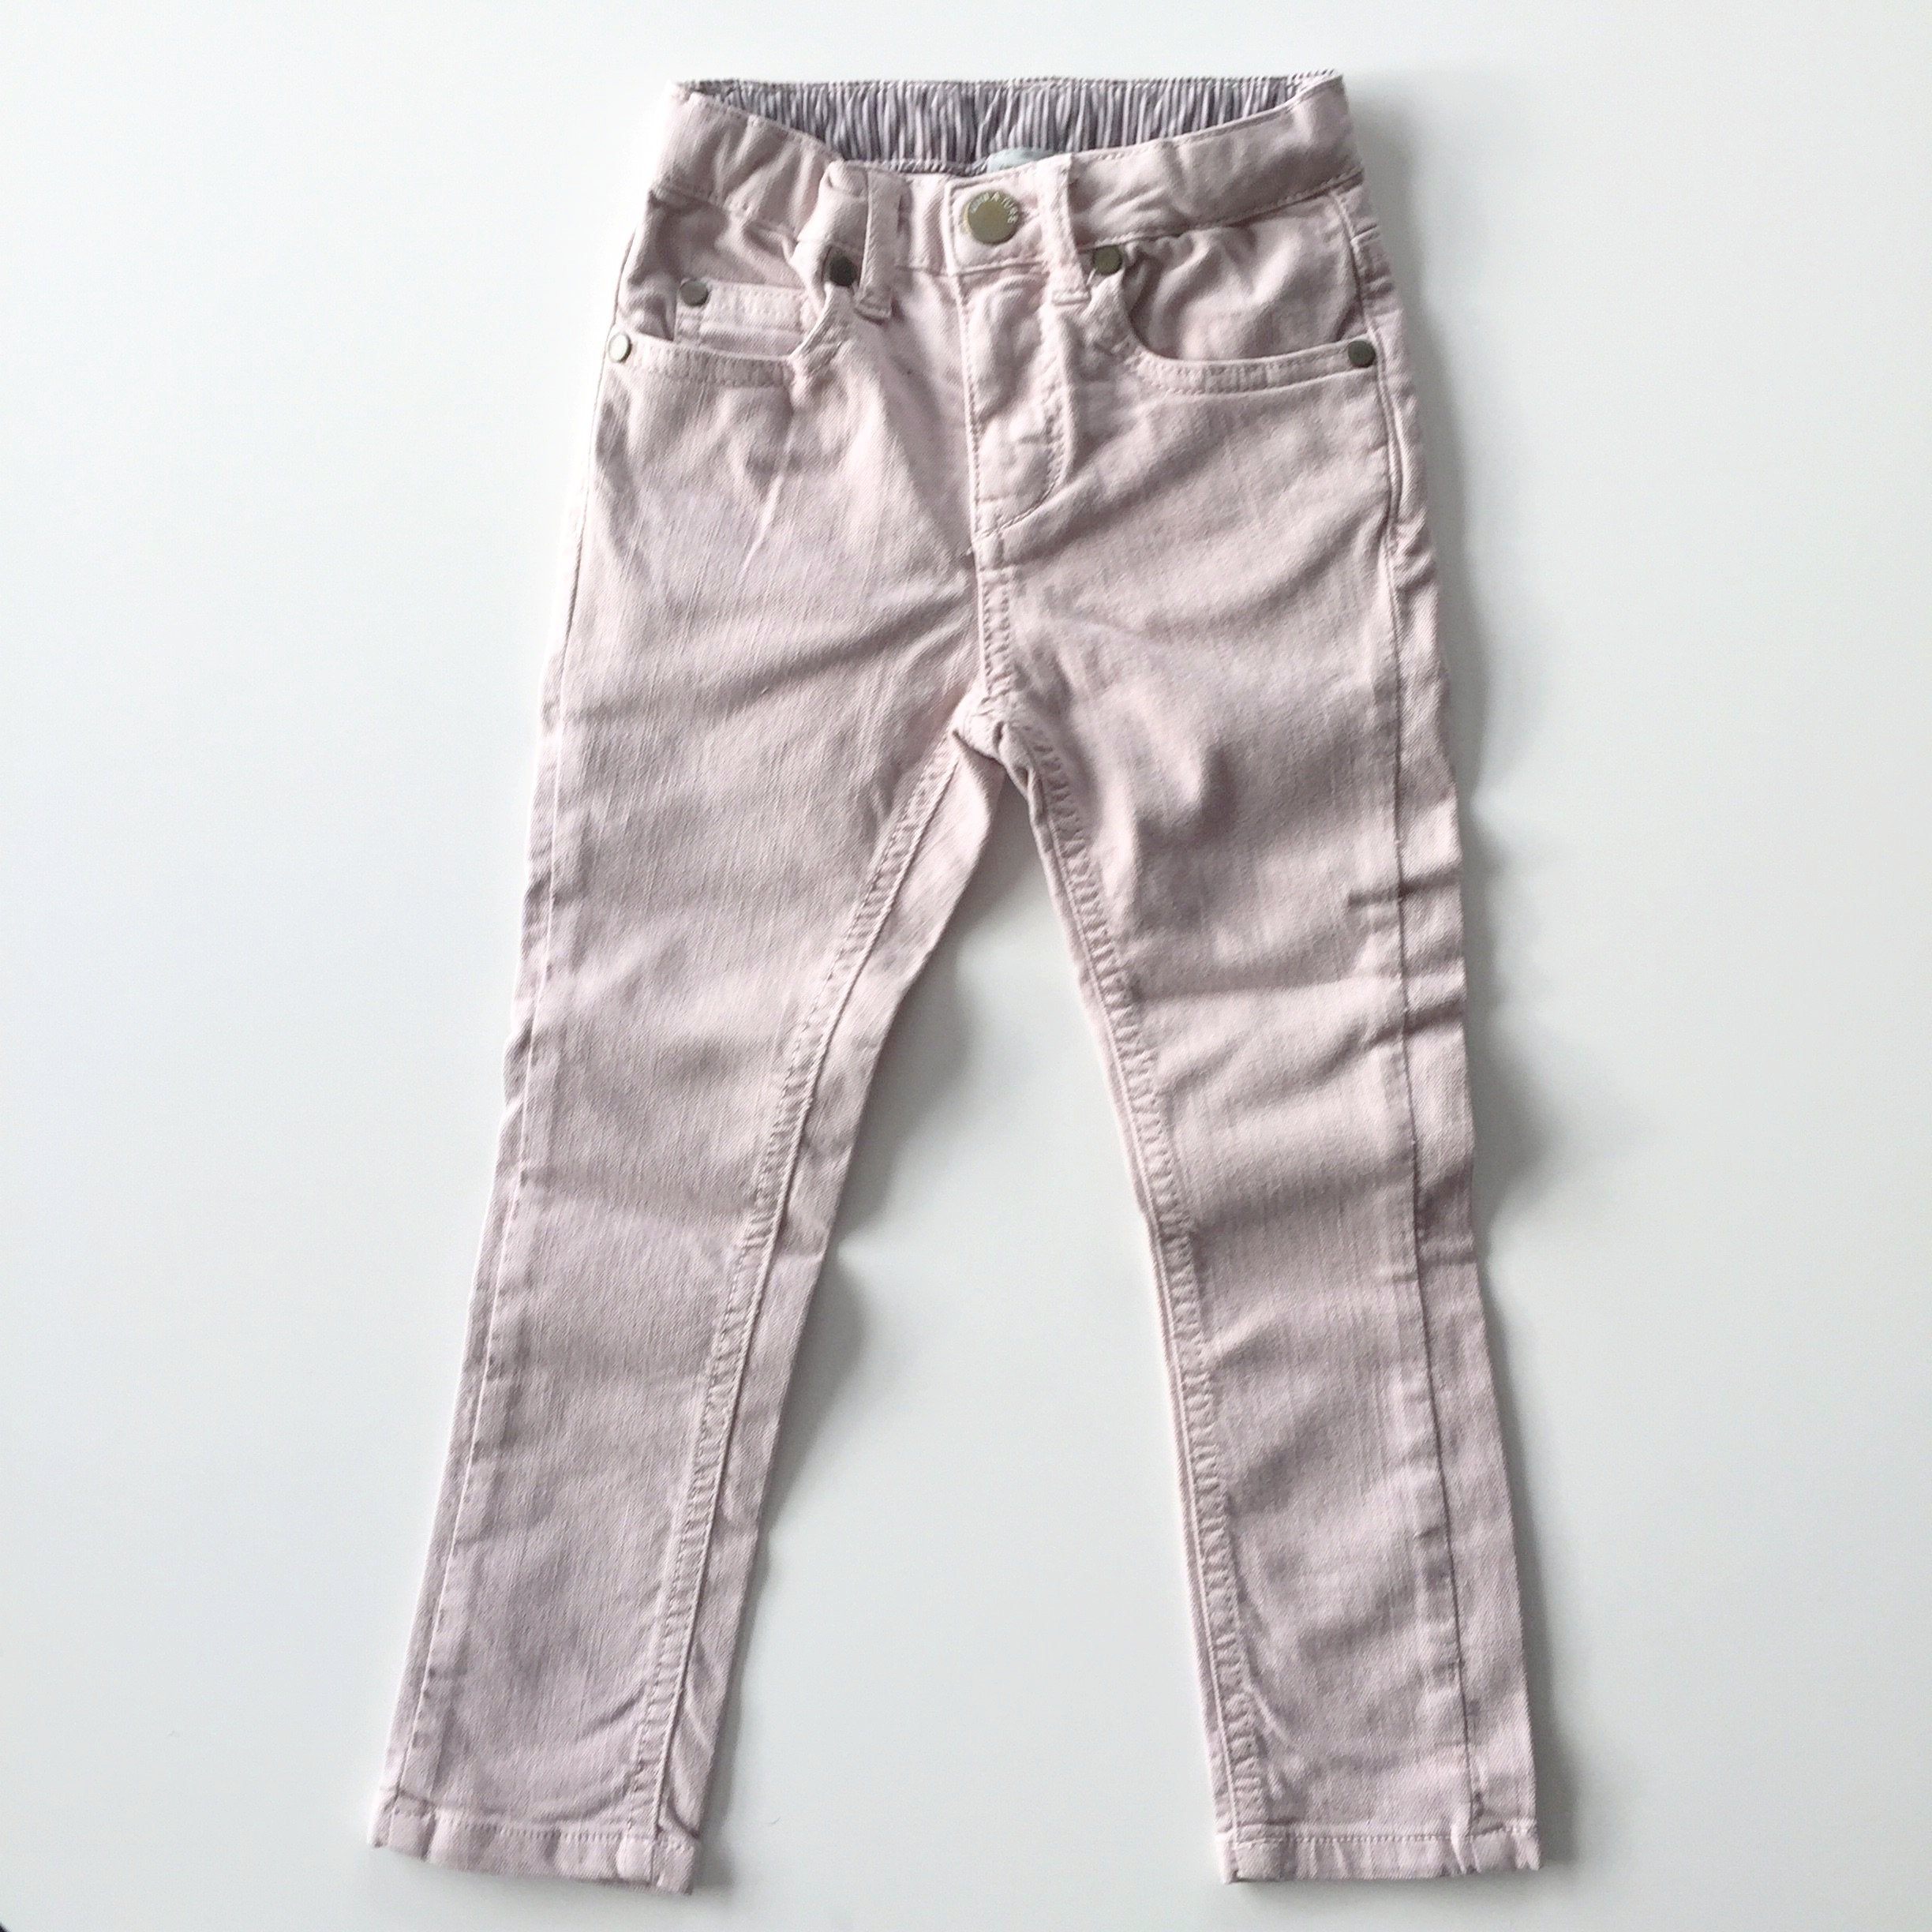 Mini A Ture - Jeans, Gina - Burnt Rose